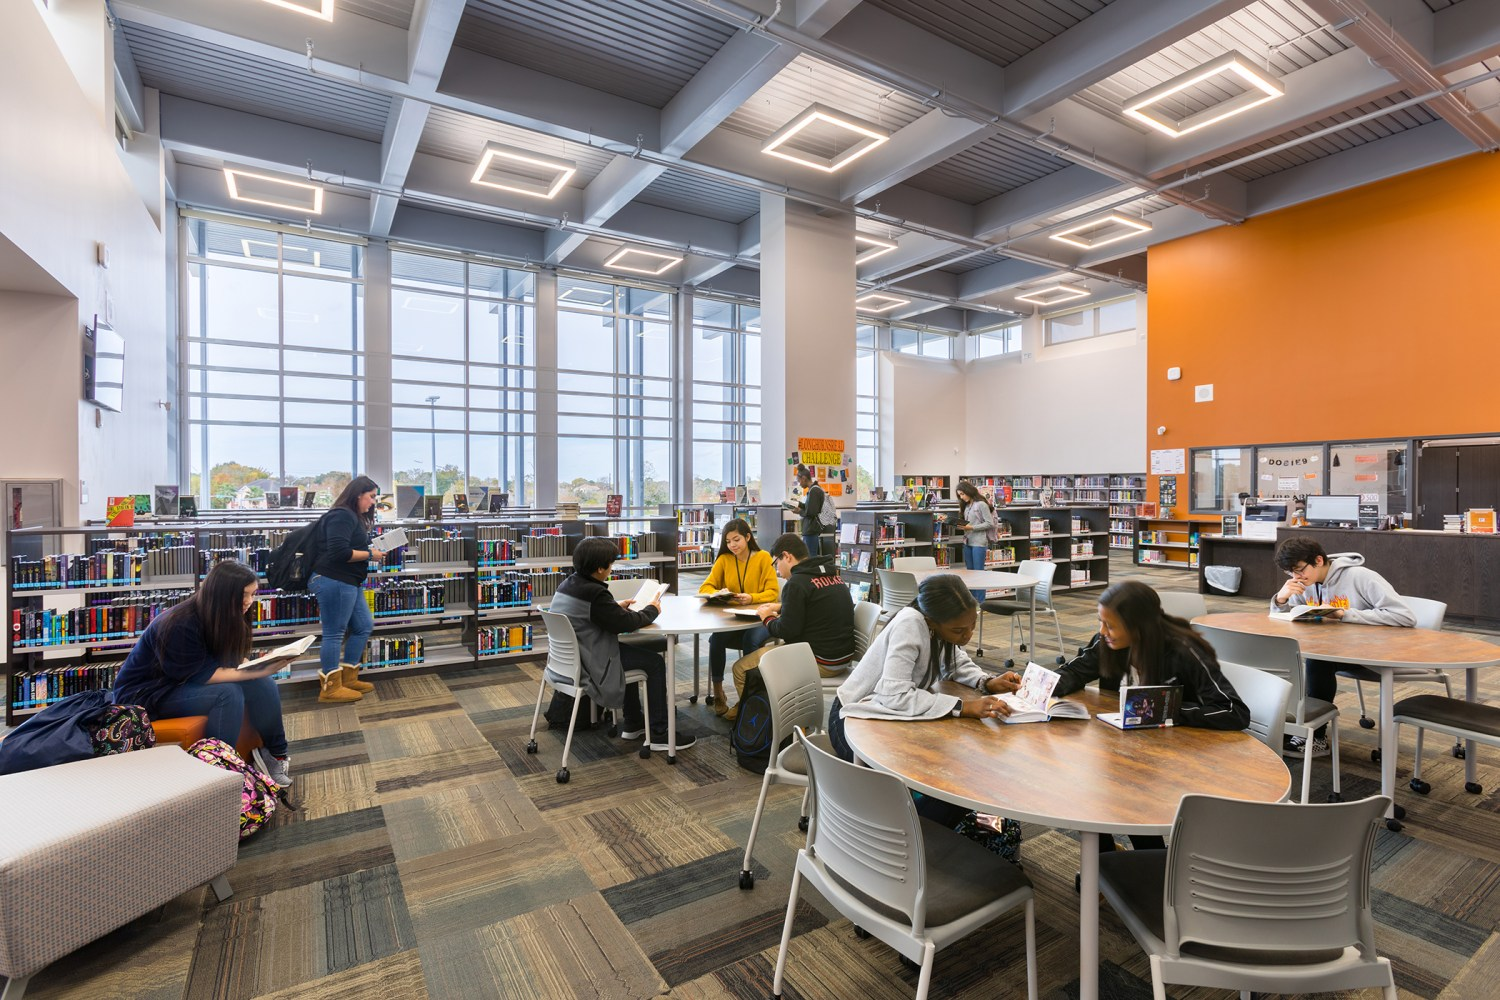 Dobie Ninth Grade Center - Library and Resource Center